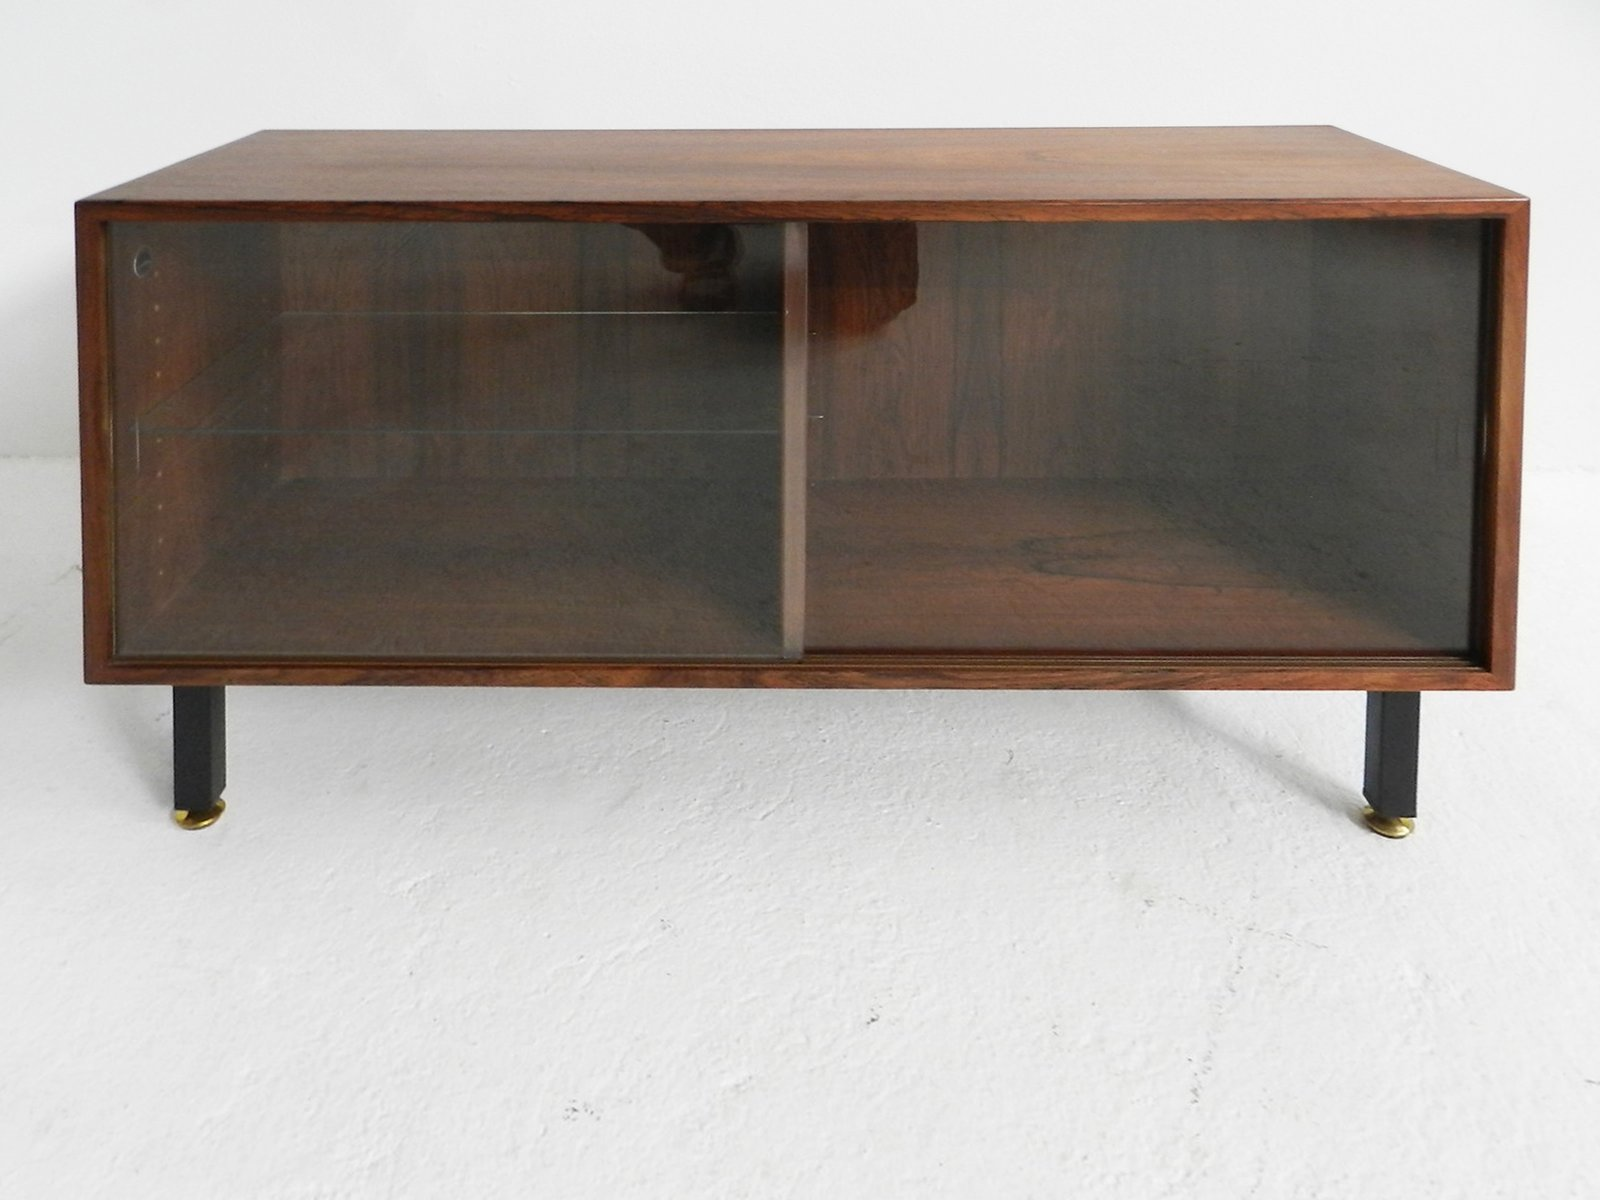 Small mid century danish rosewood sideboard for sale at pamono - Sideboard mid century ...